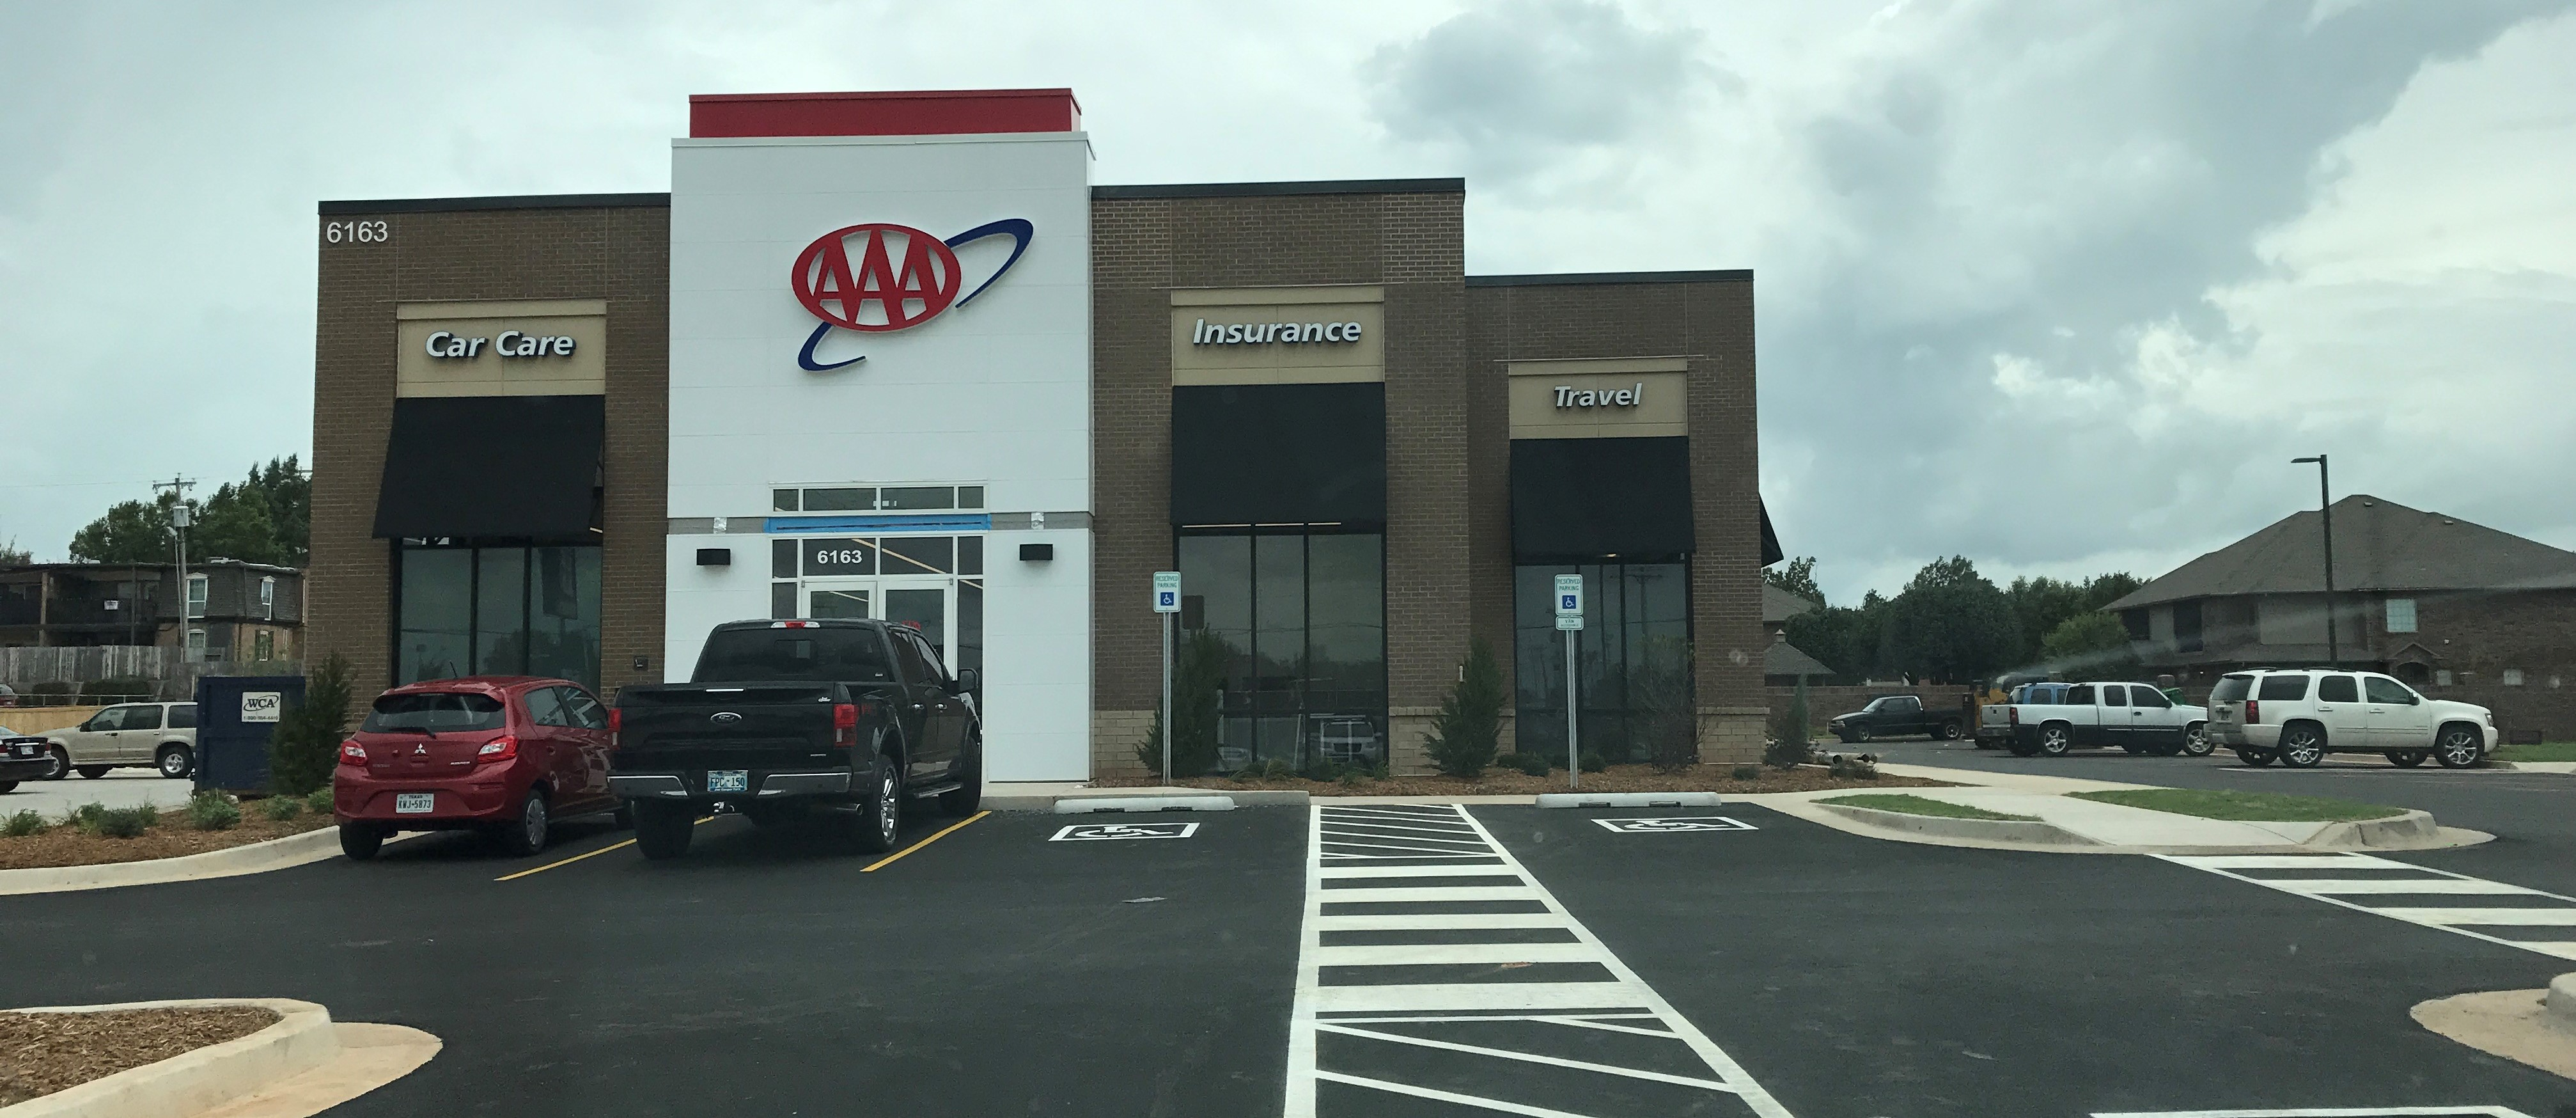 AAA Adds Car Care to Customer Experience